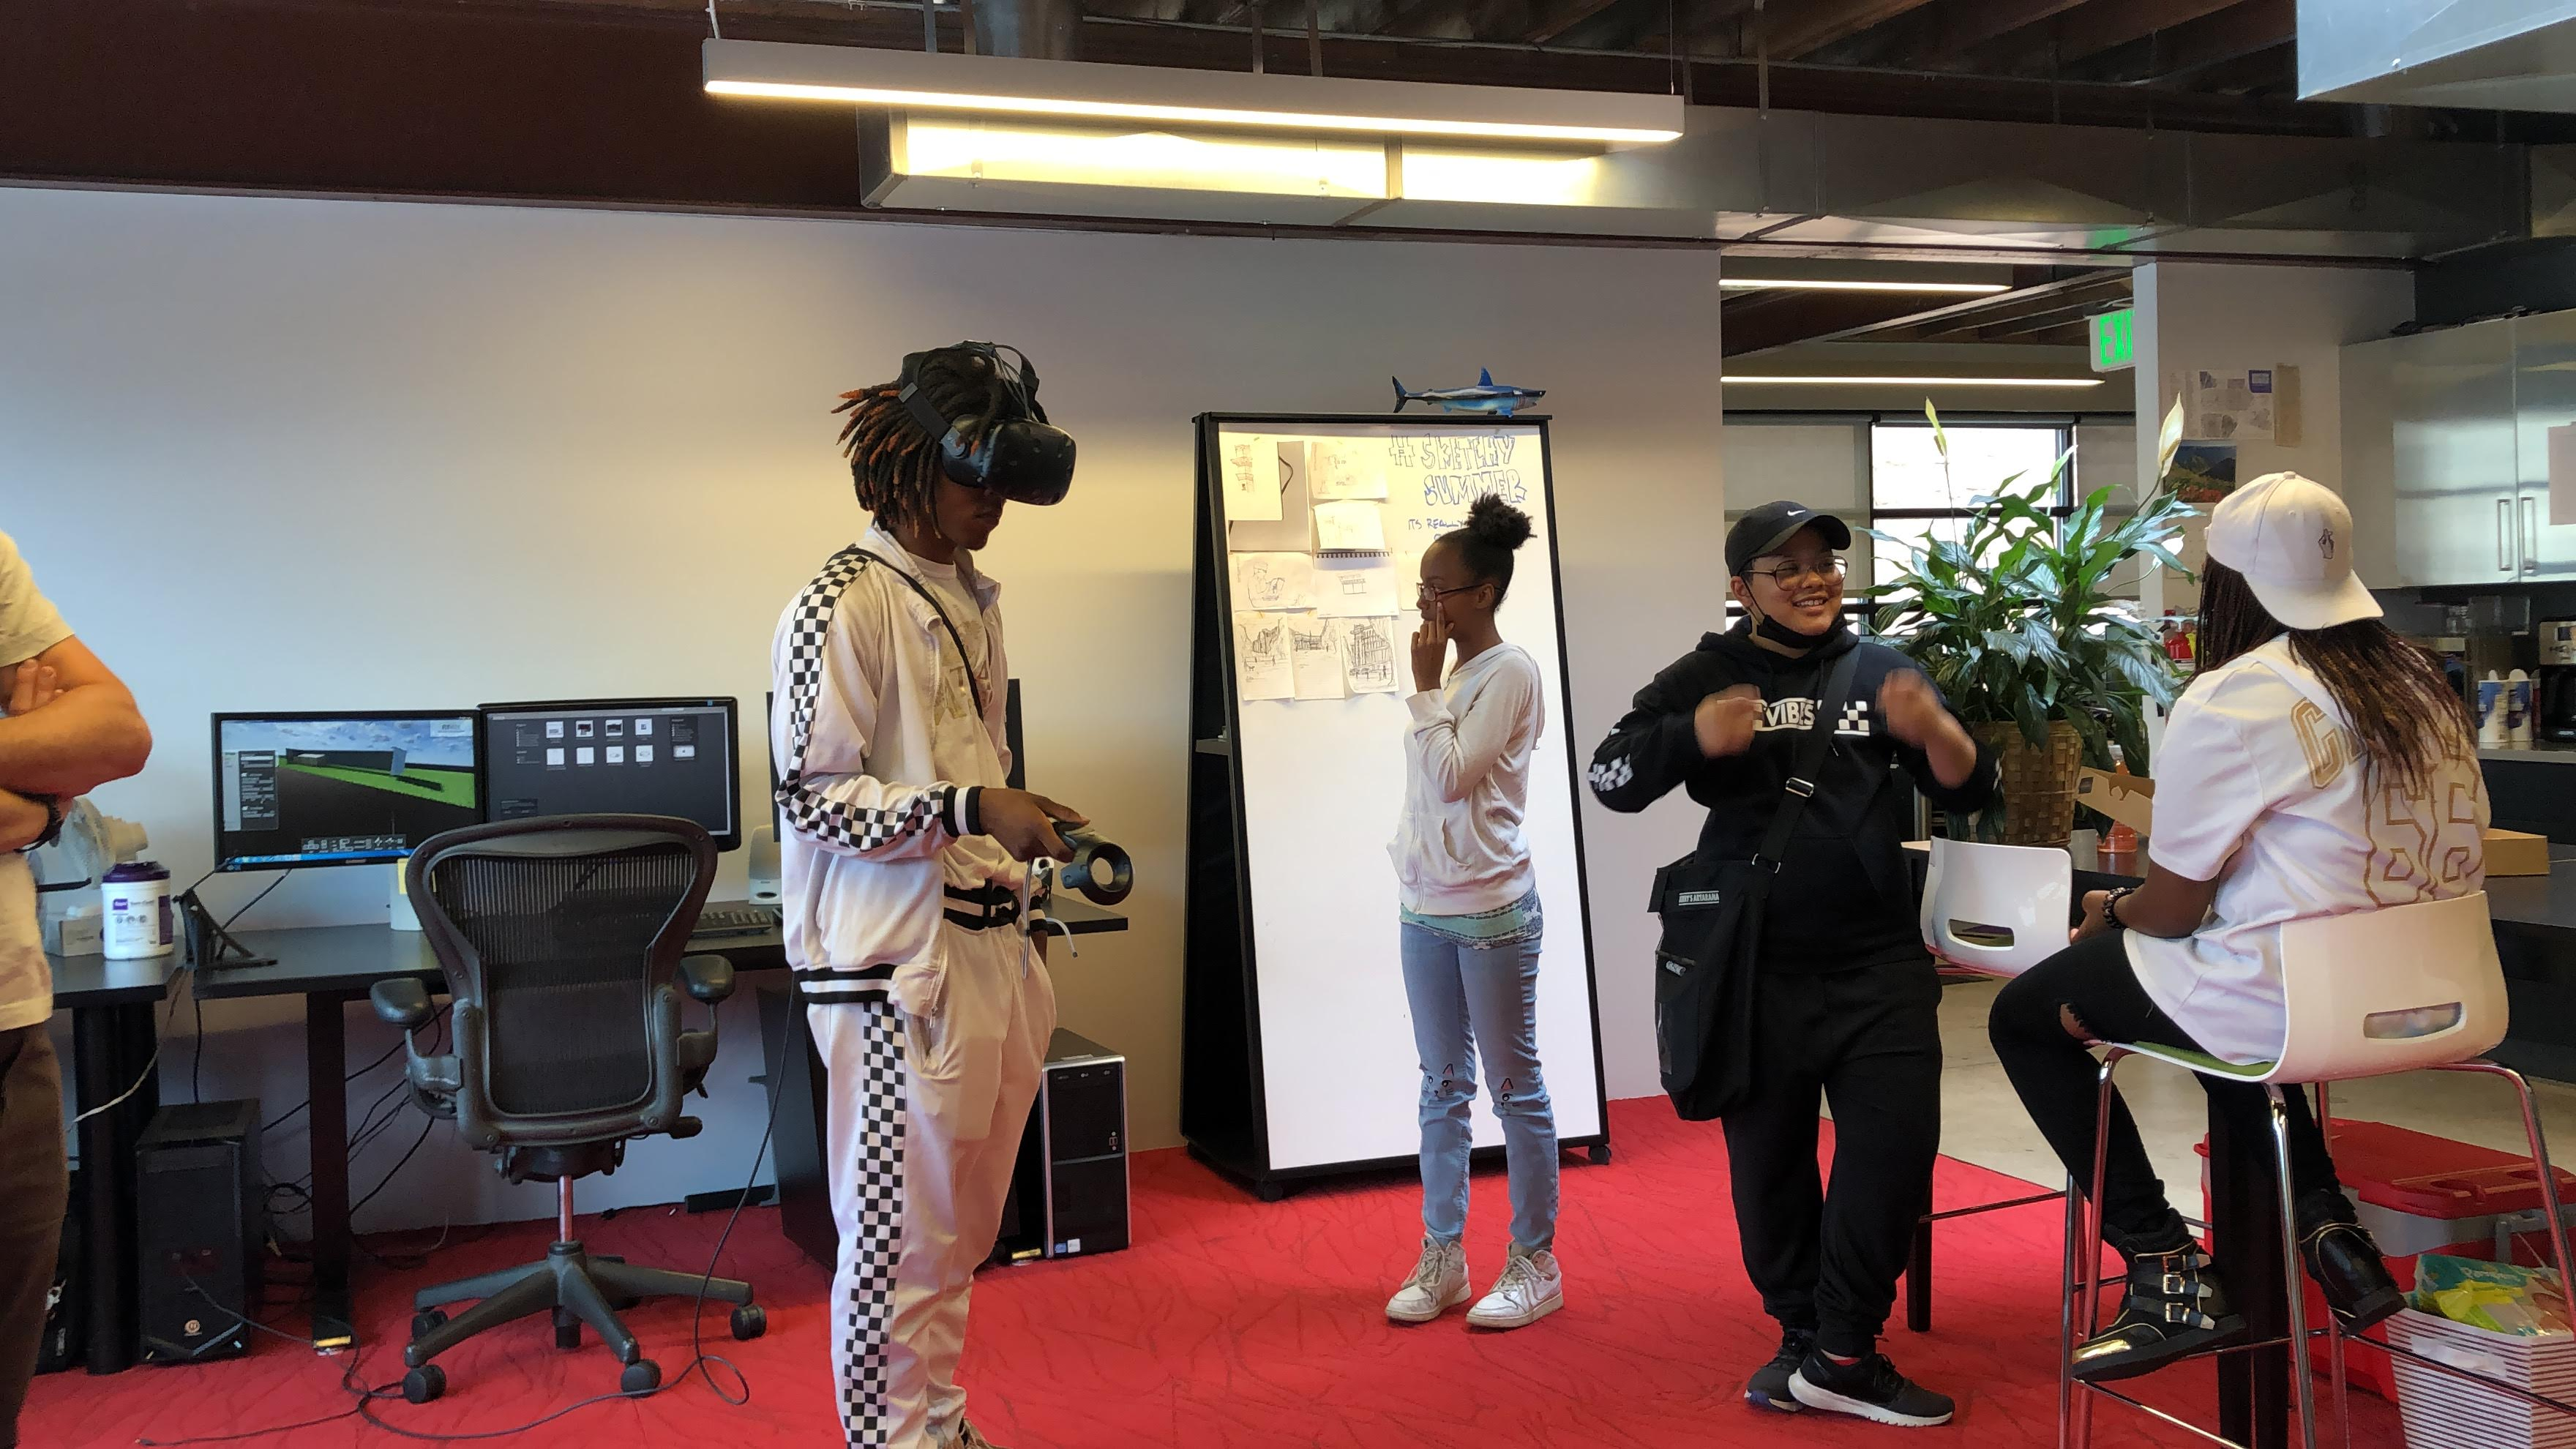 Person with a VR headset and others talking nearby